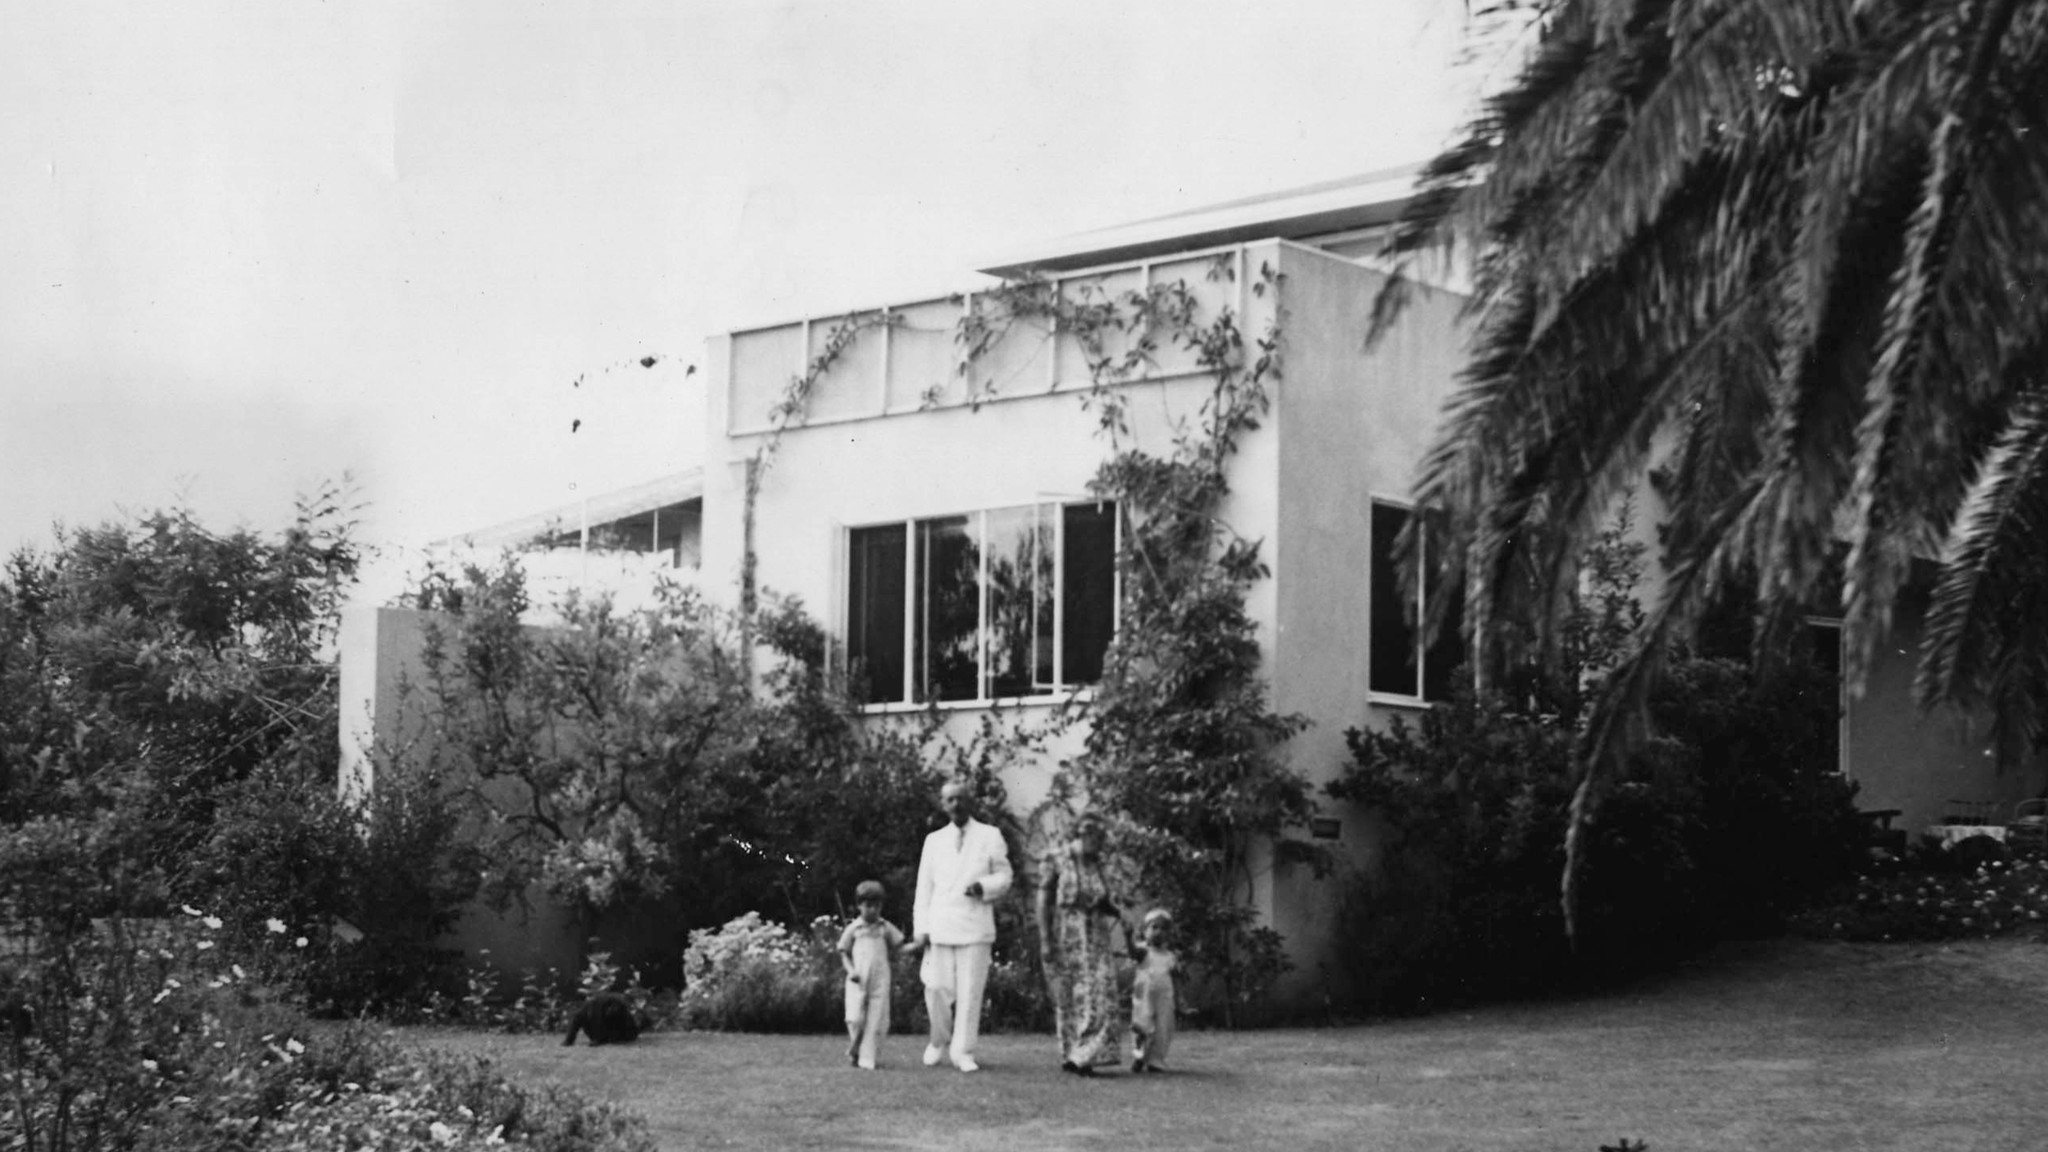 thomas mann house by midcentury great j r davidson l a 39 s next big teardown la times. Black Bedroom Furniture Sets. Home Design Ideas